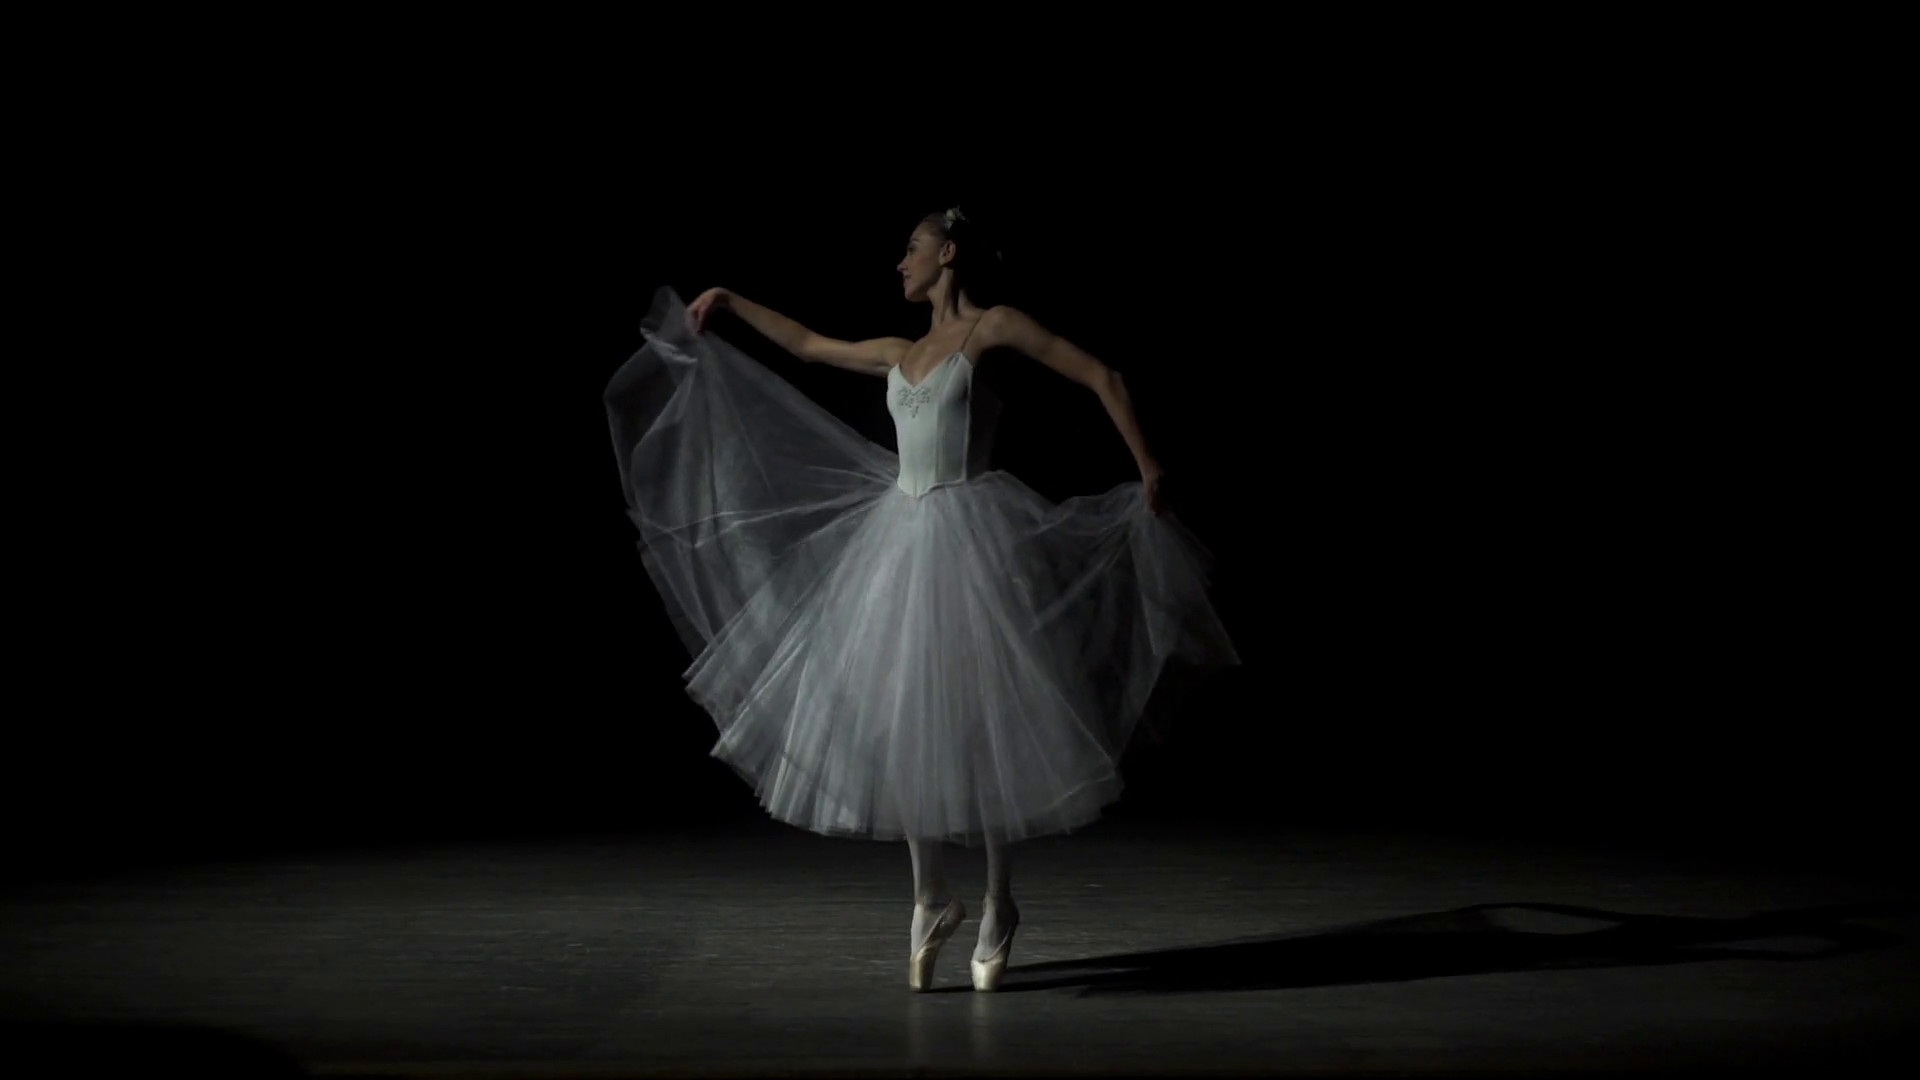 1920x1080 Black And White Ballet Wallpapers Picture